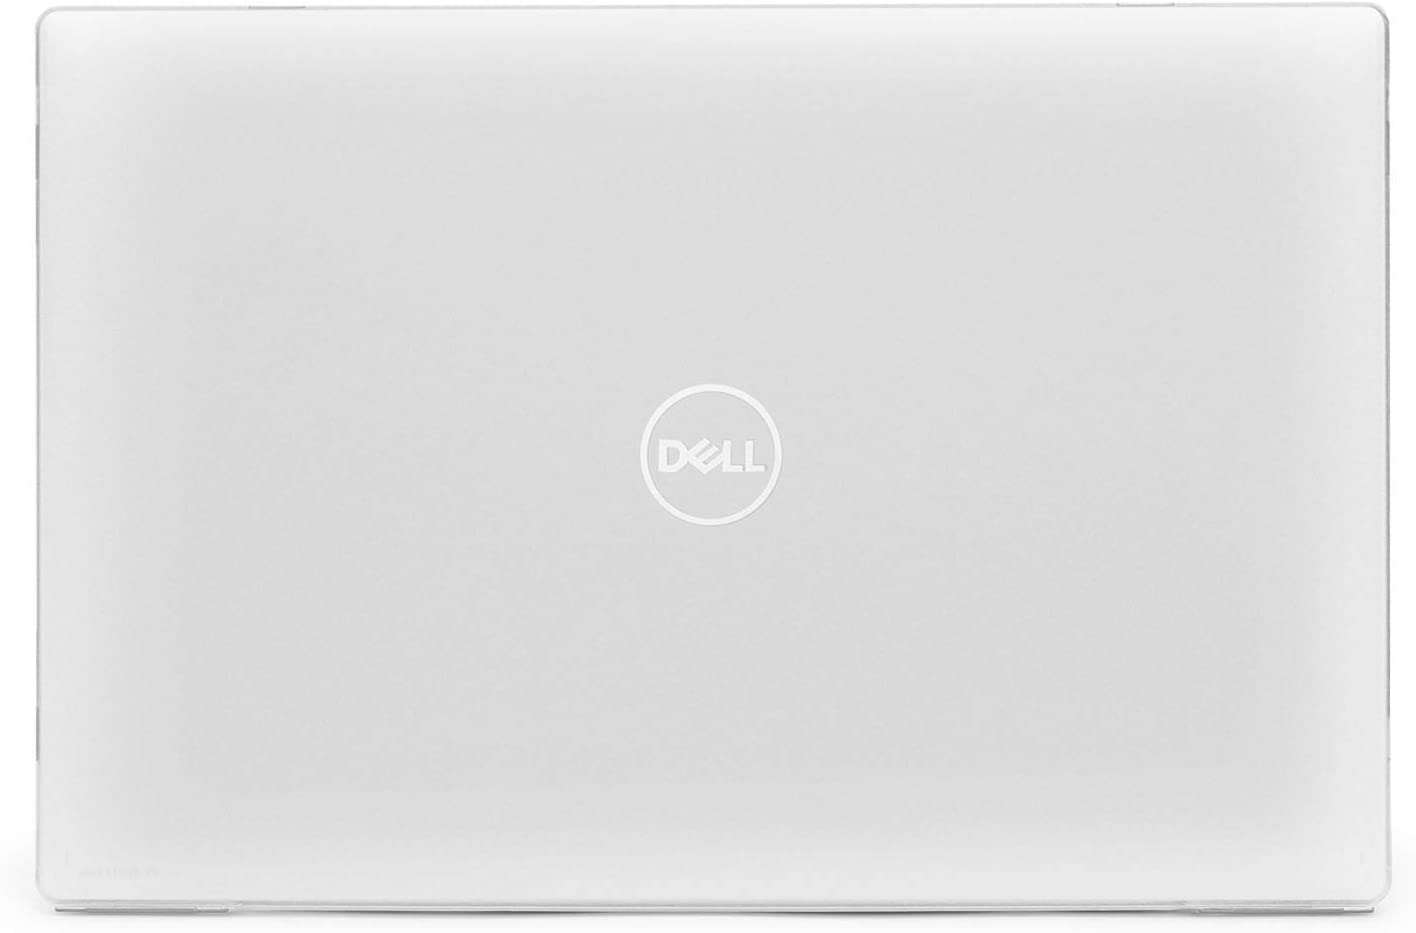 """mCover Hard Shell Case for 2020 13.4"""" Dell XPS 13 9300 (non-2in1) Models (Clear)"""